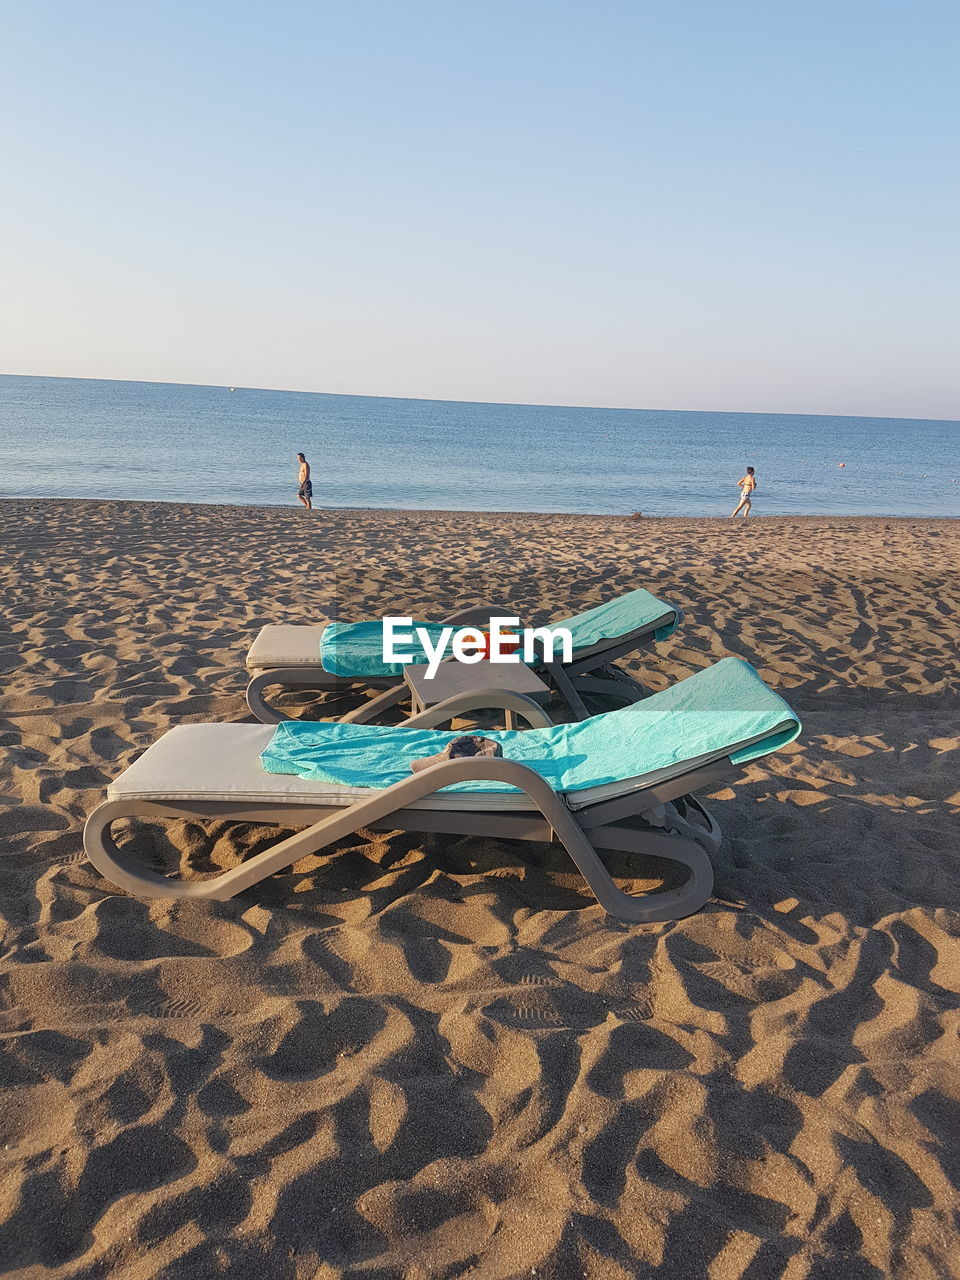 beach, horizon over water, sea, sand, water, shore, tranquility, scenics, nature, tranquil scene, clear sky, sun lounger, beauty in nature, sky, sunlight, day, no people, vacations, outdoors, summer